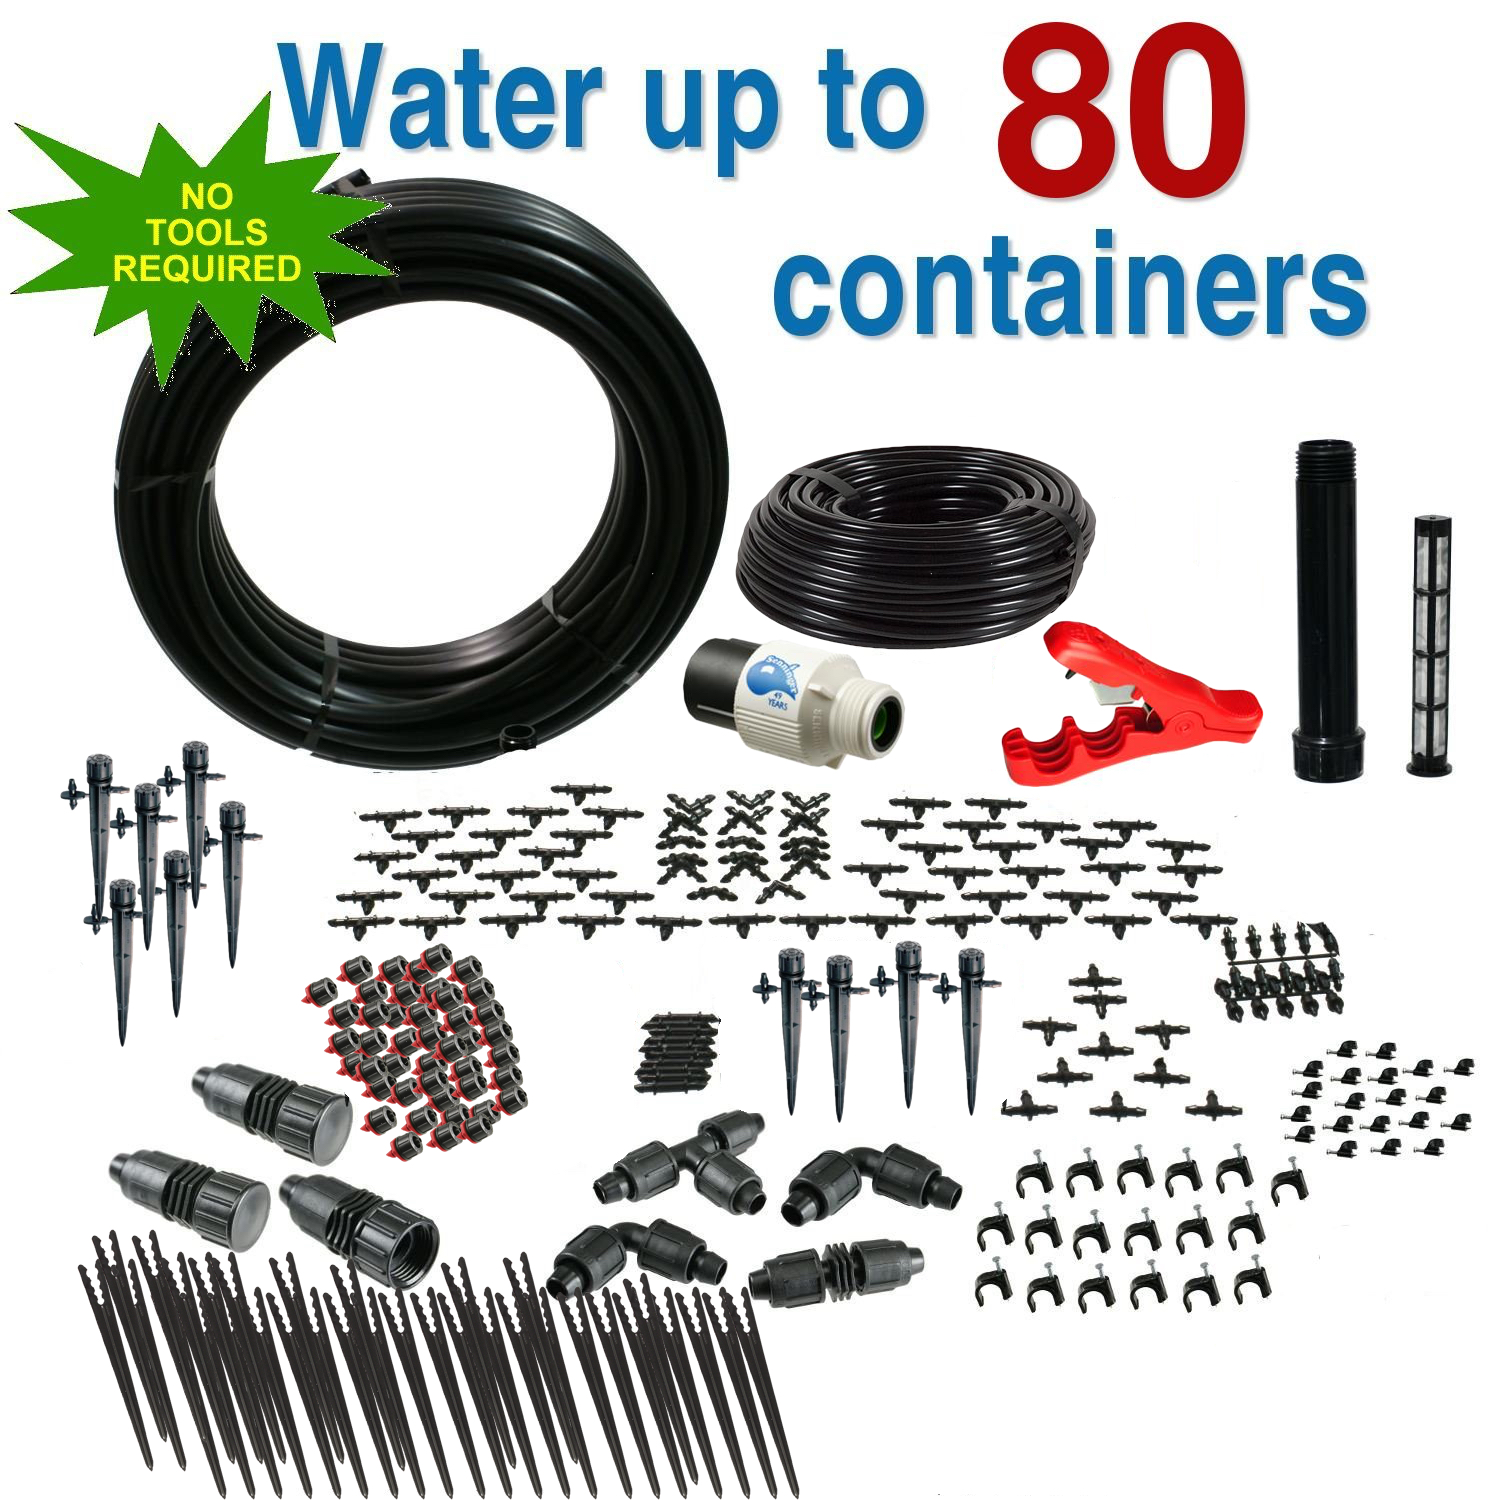 Patio Container Drip Irrigation Watering Kit: Premium Drip Irrigation Kit For Container Gardening